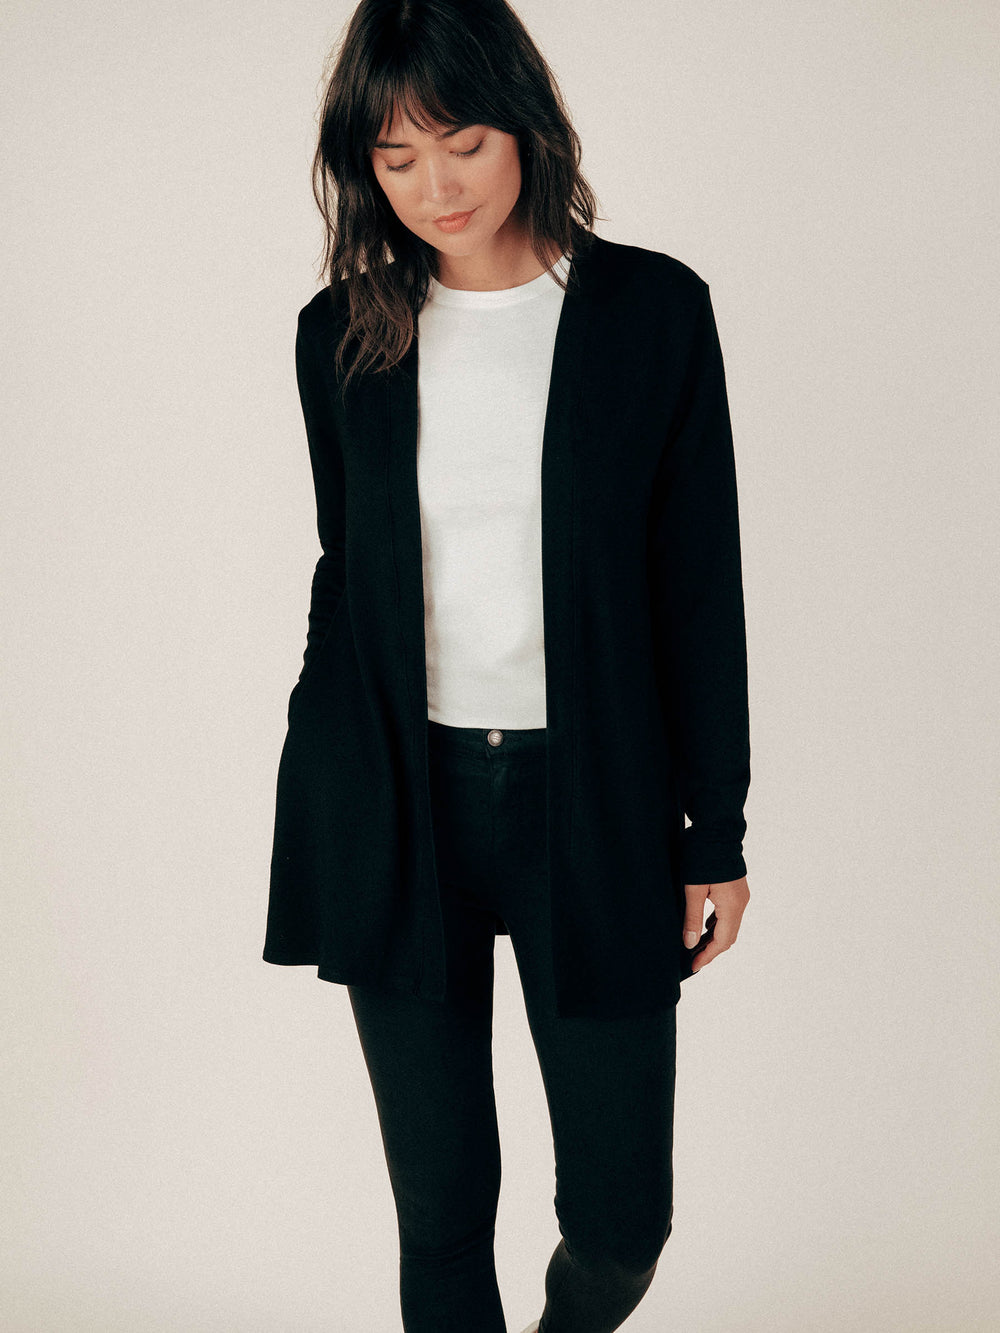 Black French Terry Cardigan - Graceful District